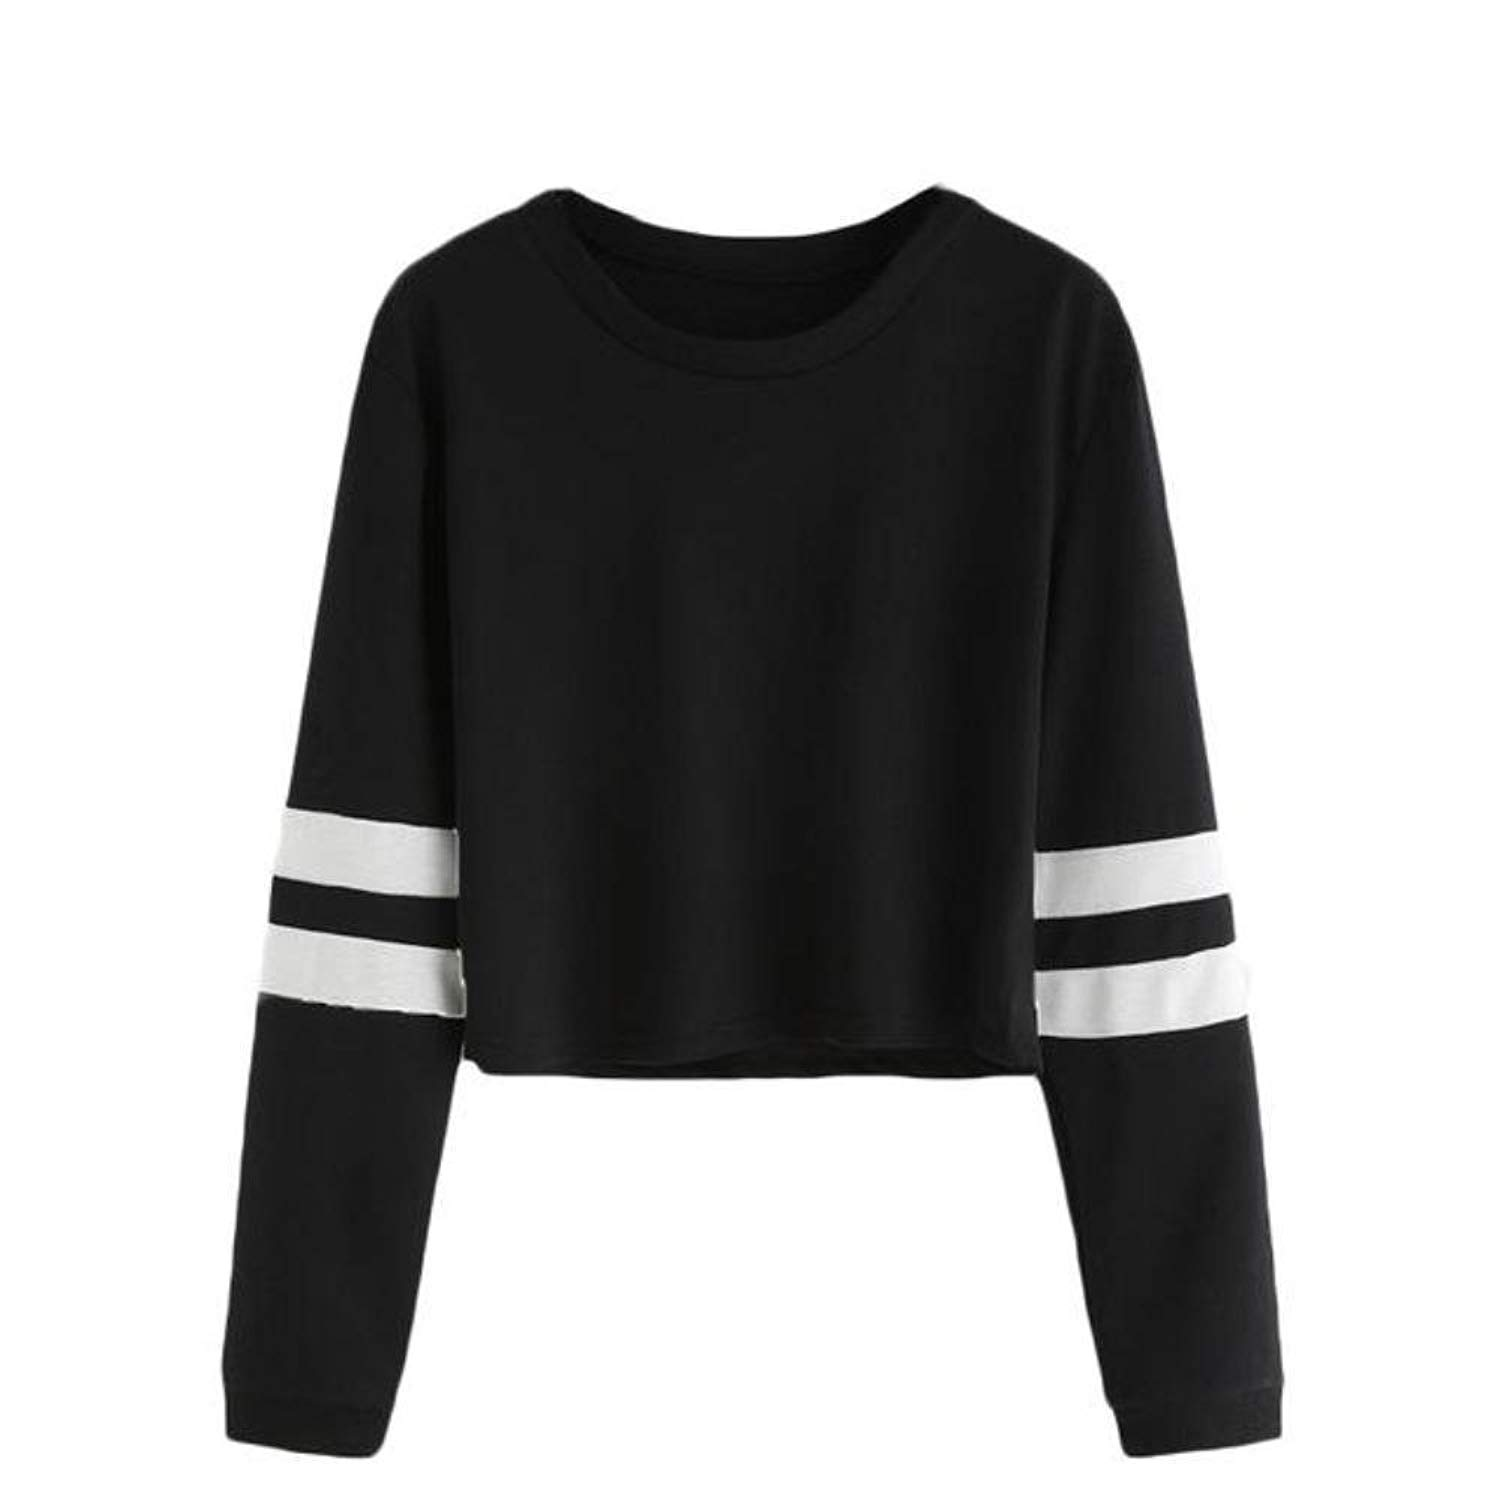 eb185ad5e4 Get Quotations · Yashu Women Red Black Color Round Neck Striped Long Sleeve  Polyester Top Tees